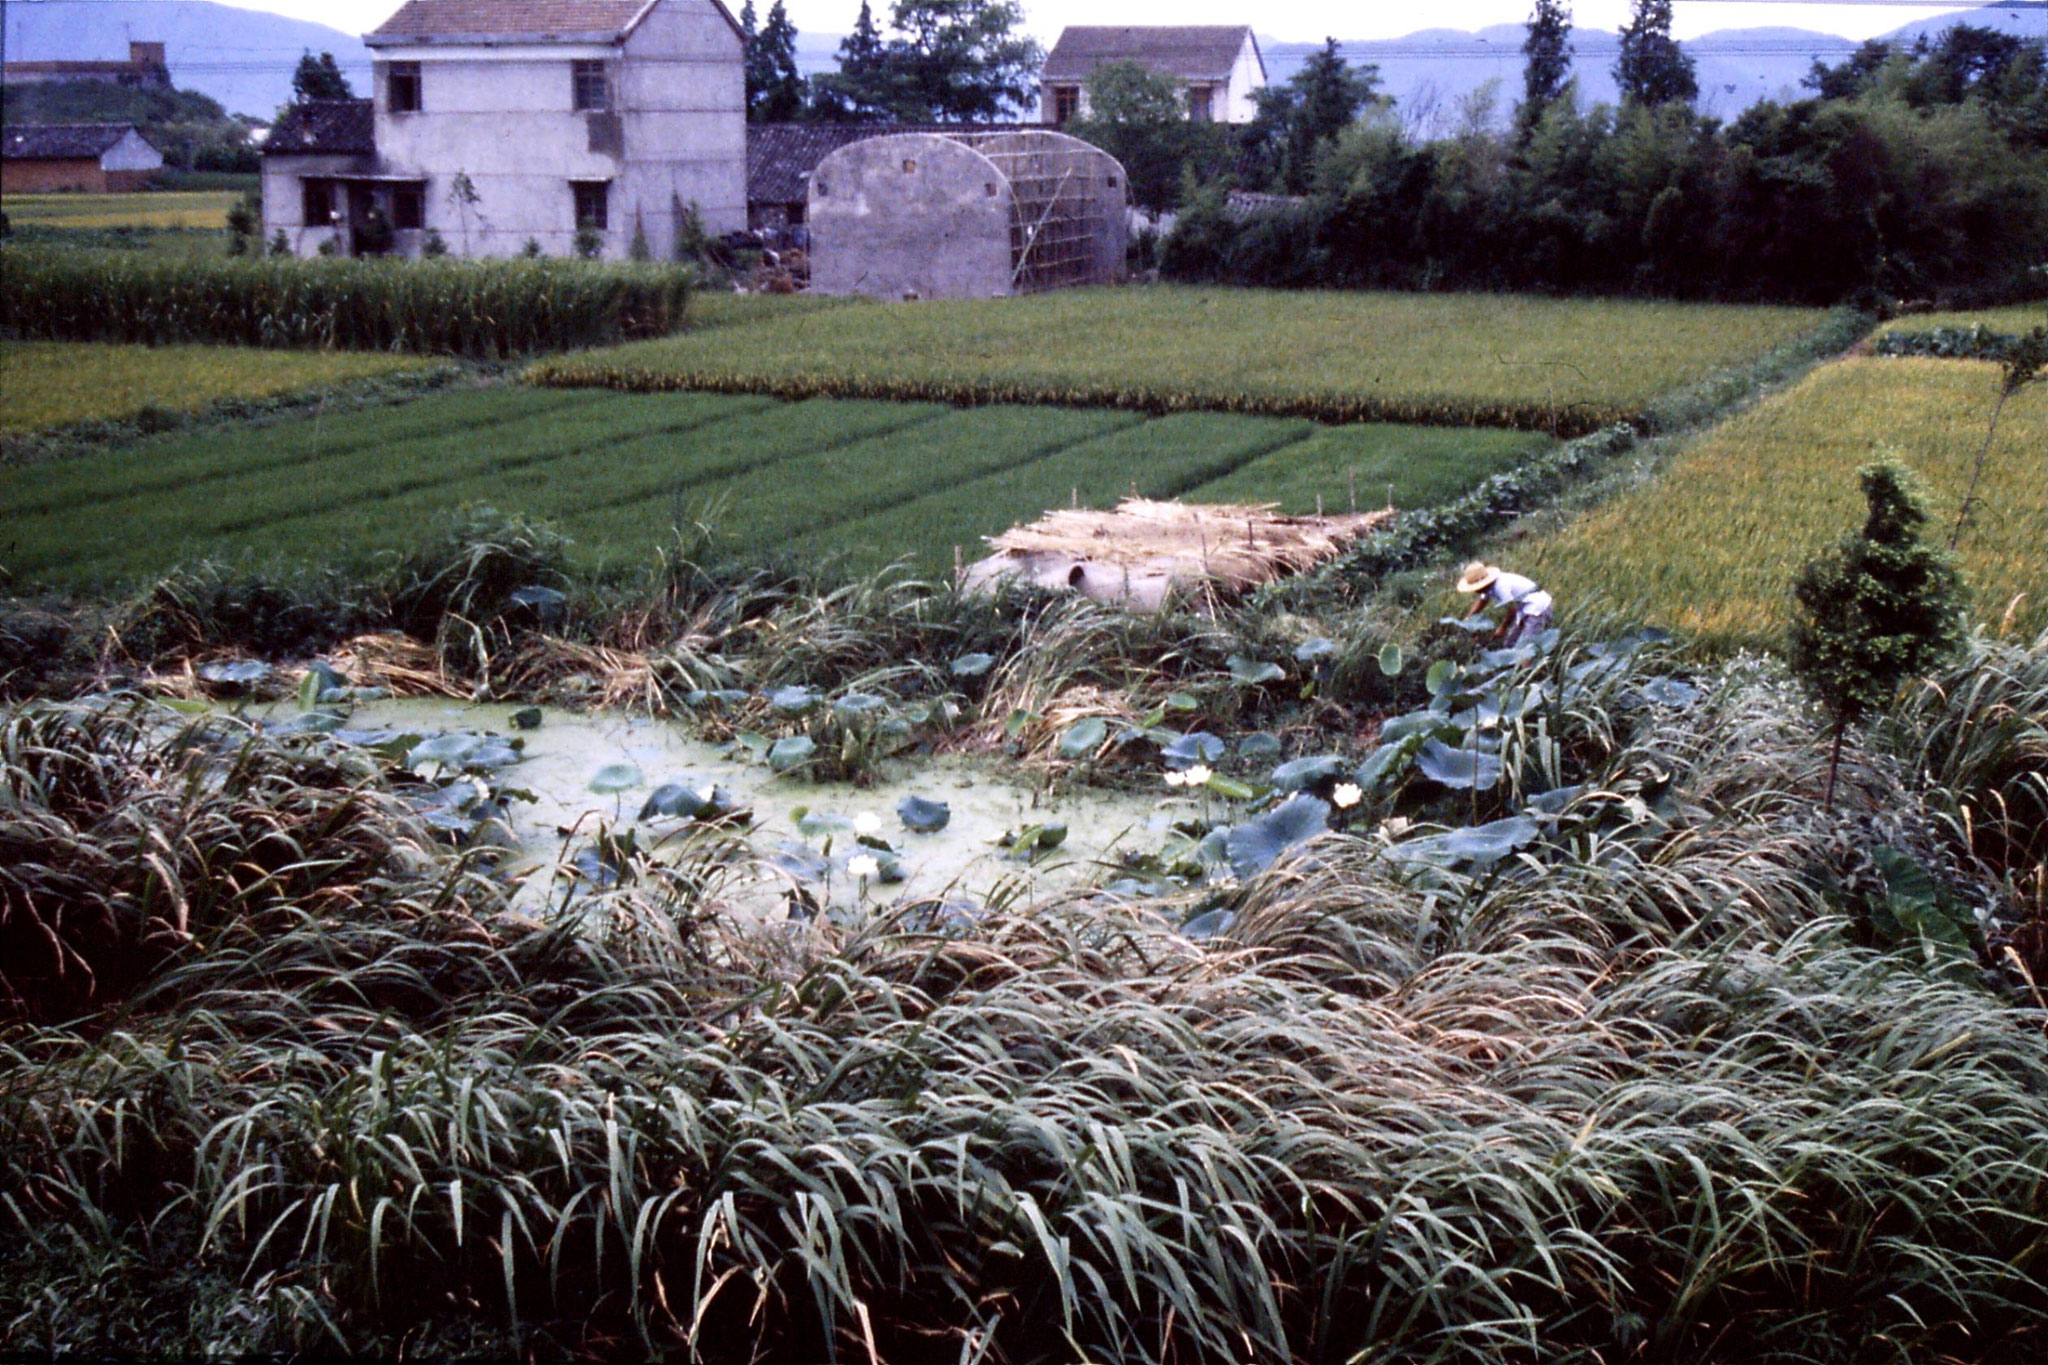 23/7/1989: 39: lotus pnd in rice fields